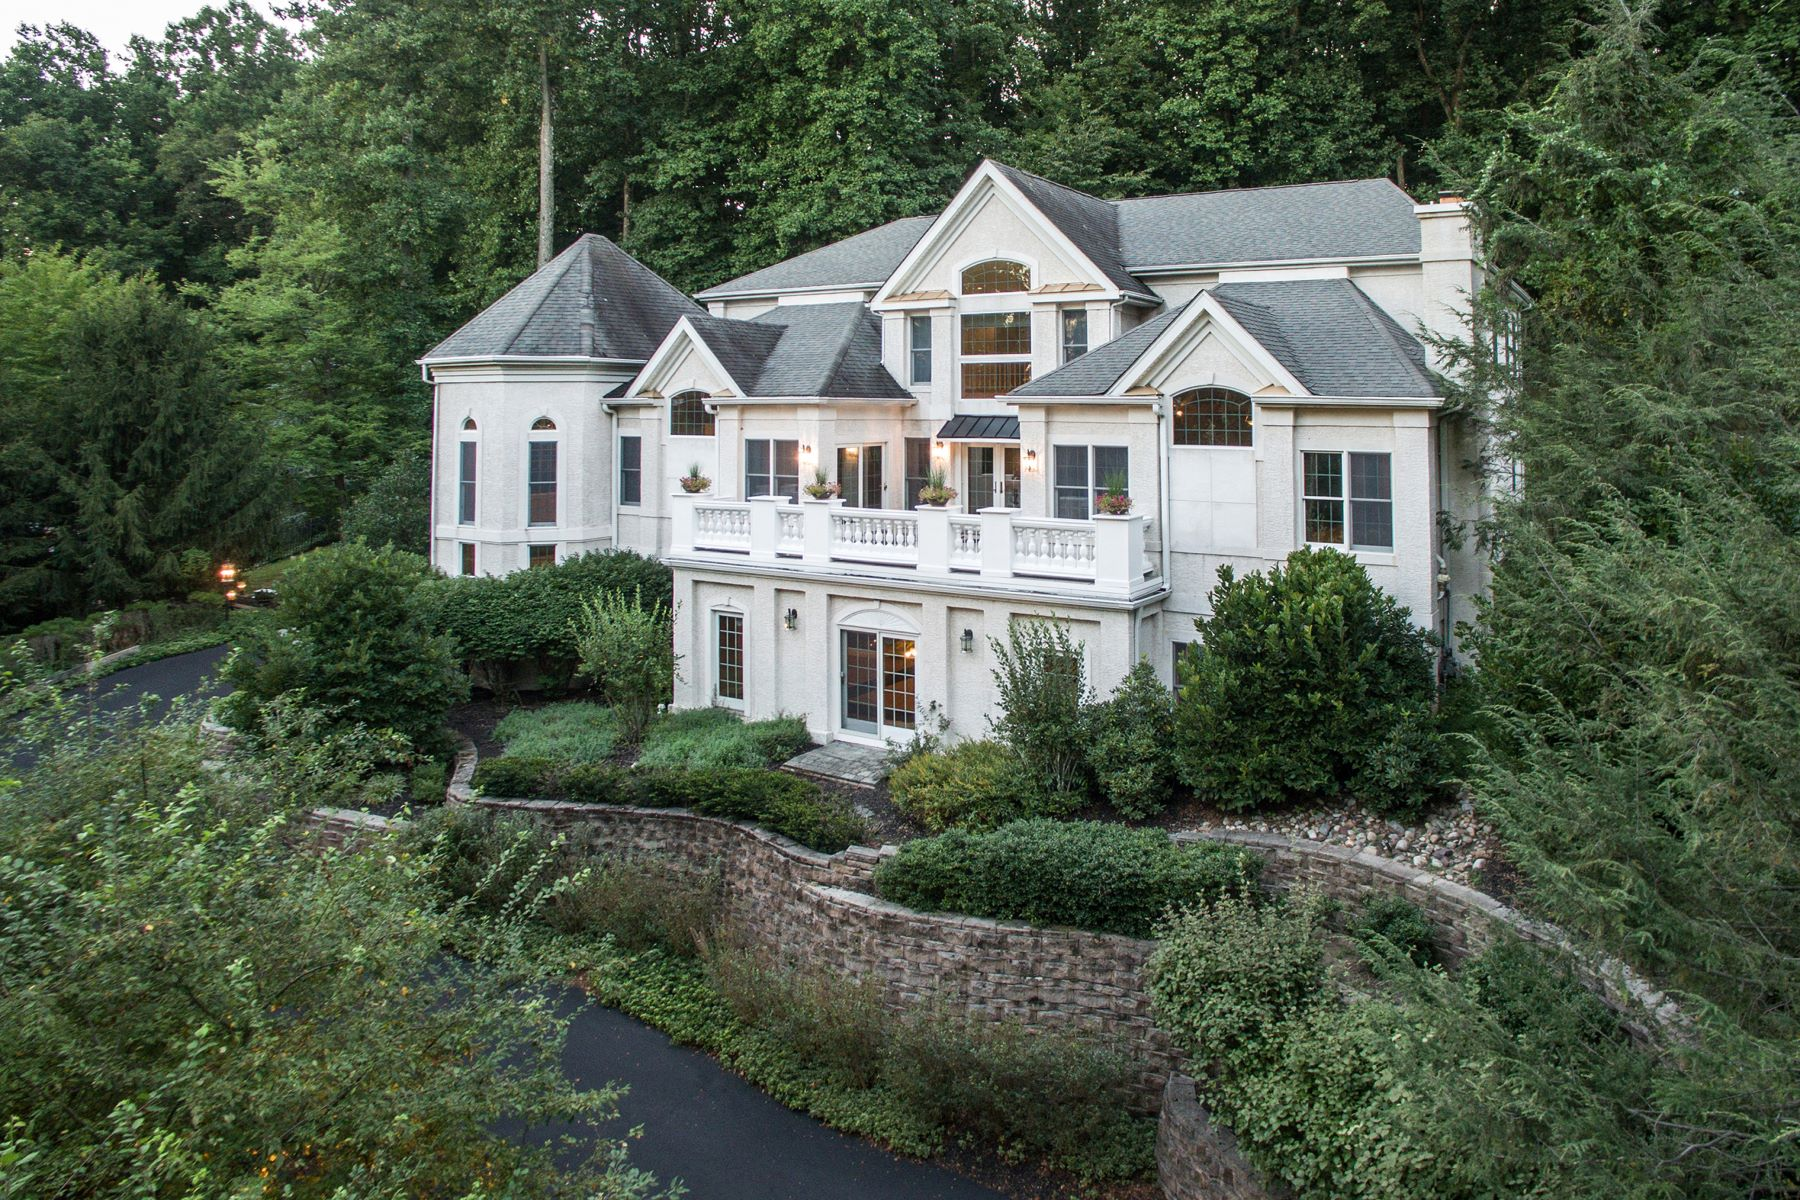 Single Family Homes for Sale at 5690 OAK CREST DR Doylestown, Pennsylvania 18902 United States